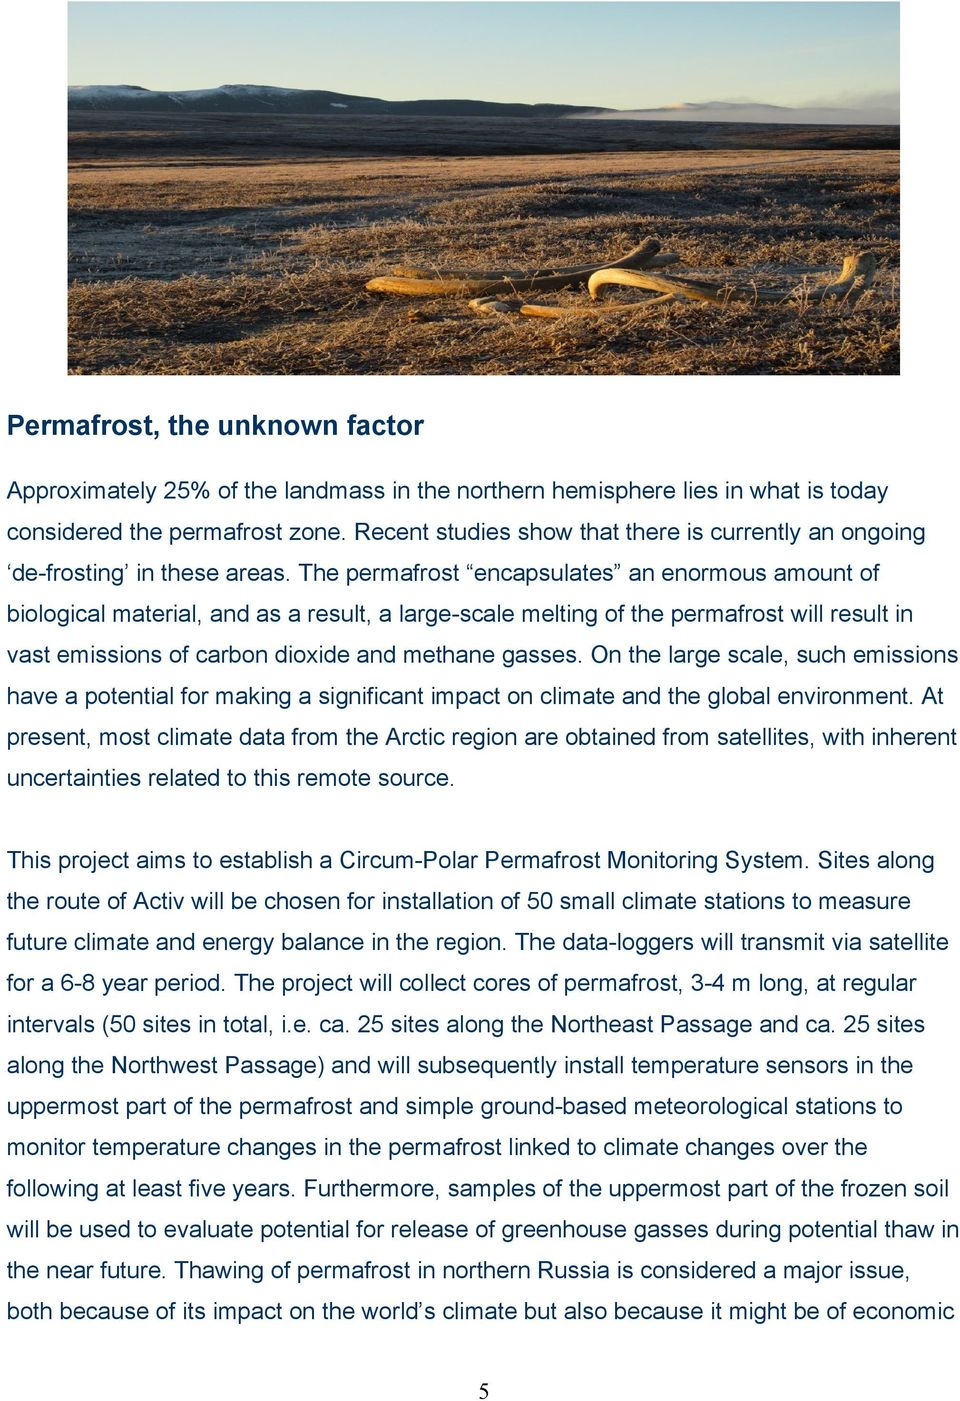 The permafrost encapsulates an enormous amount of biological material, and as a result, a large-scale melting of the permafrost will result in vast emissions of carbon dioxide and methane gasses.